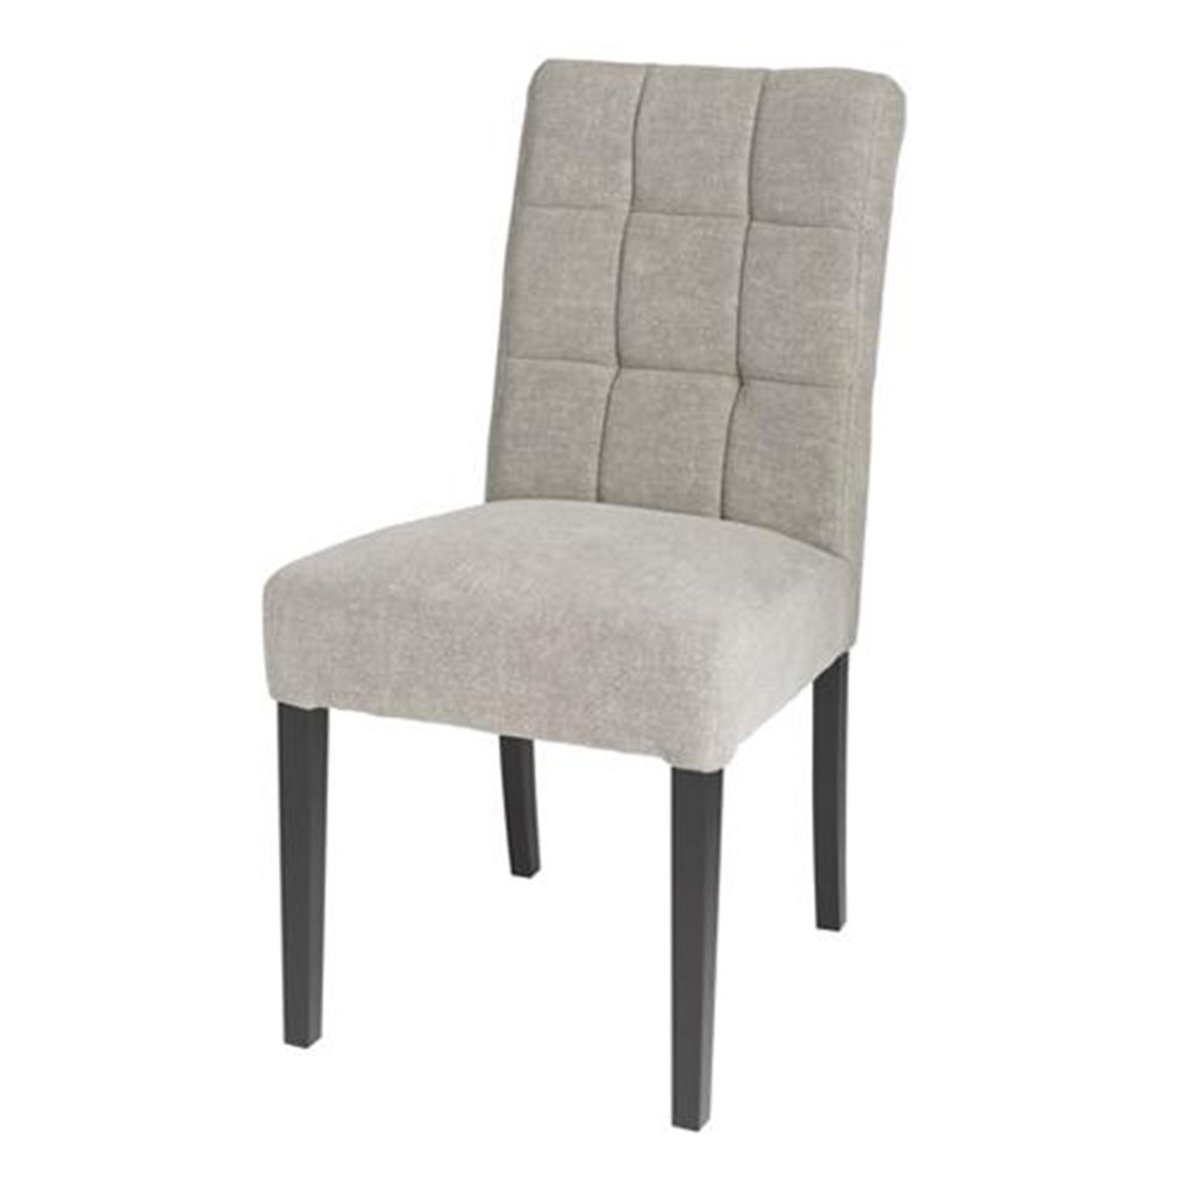 STYLISH DINING CHAIR WITH LIGHT GREY LINEN FABRIC - Showhome Furniture